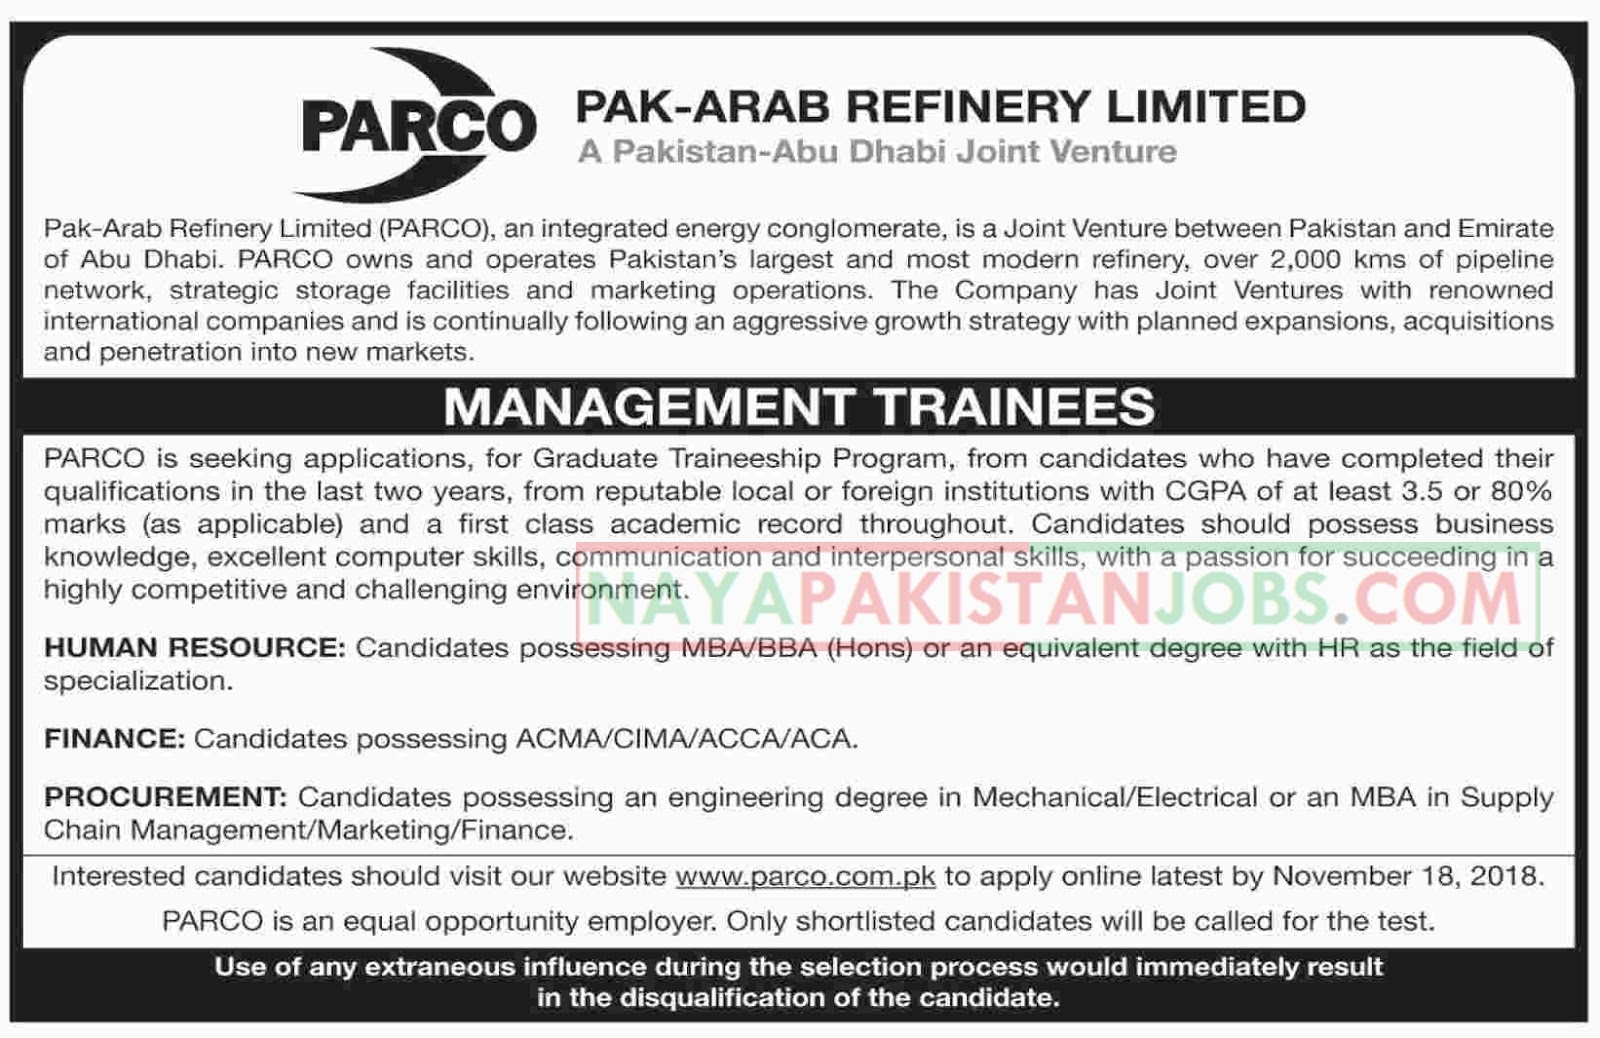 Latest Vacancies Announced in Pak Arab Refinery Limited PARCO for Graduate Traineeship Program 6 November 2018 - Naya Pakistan